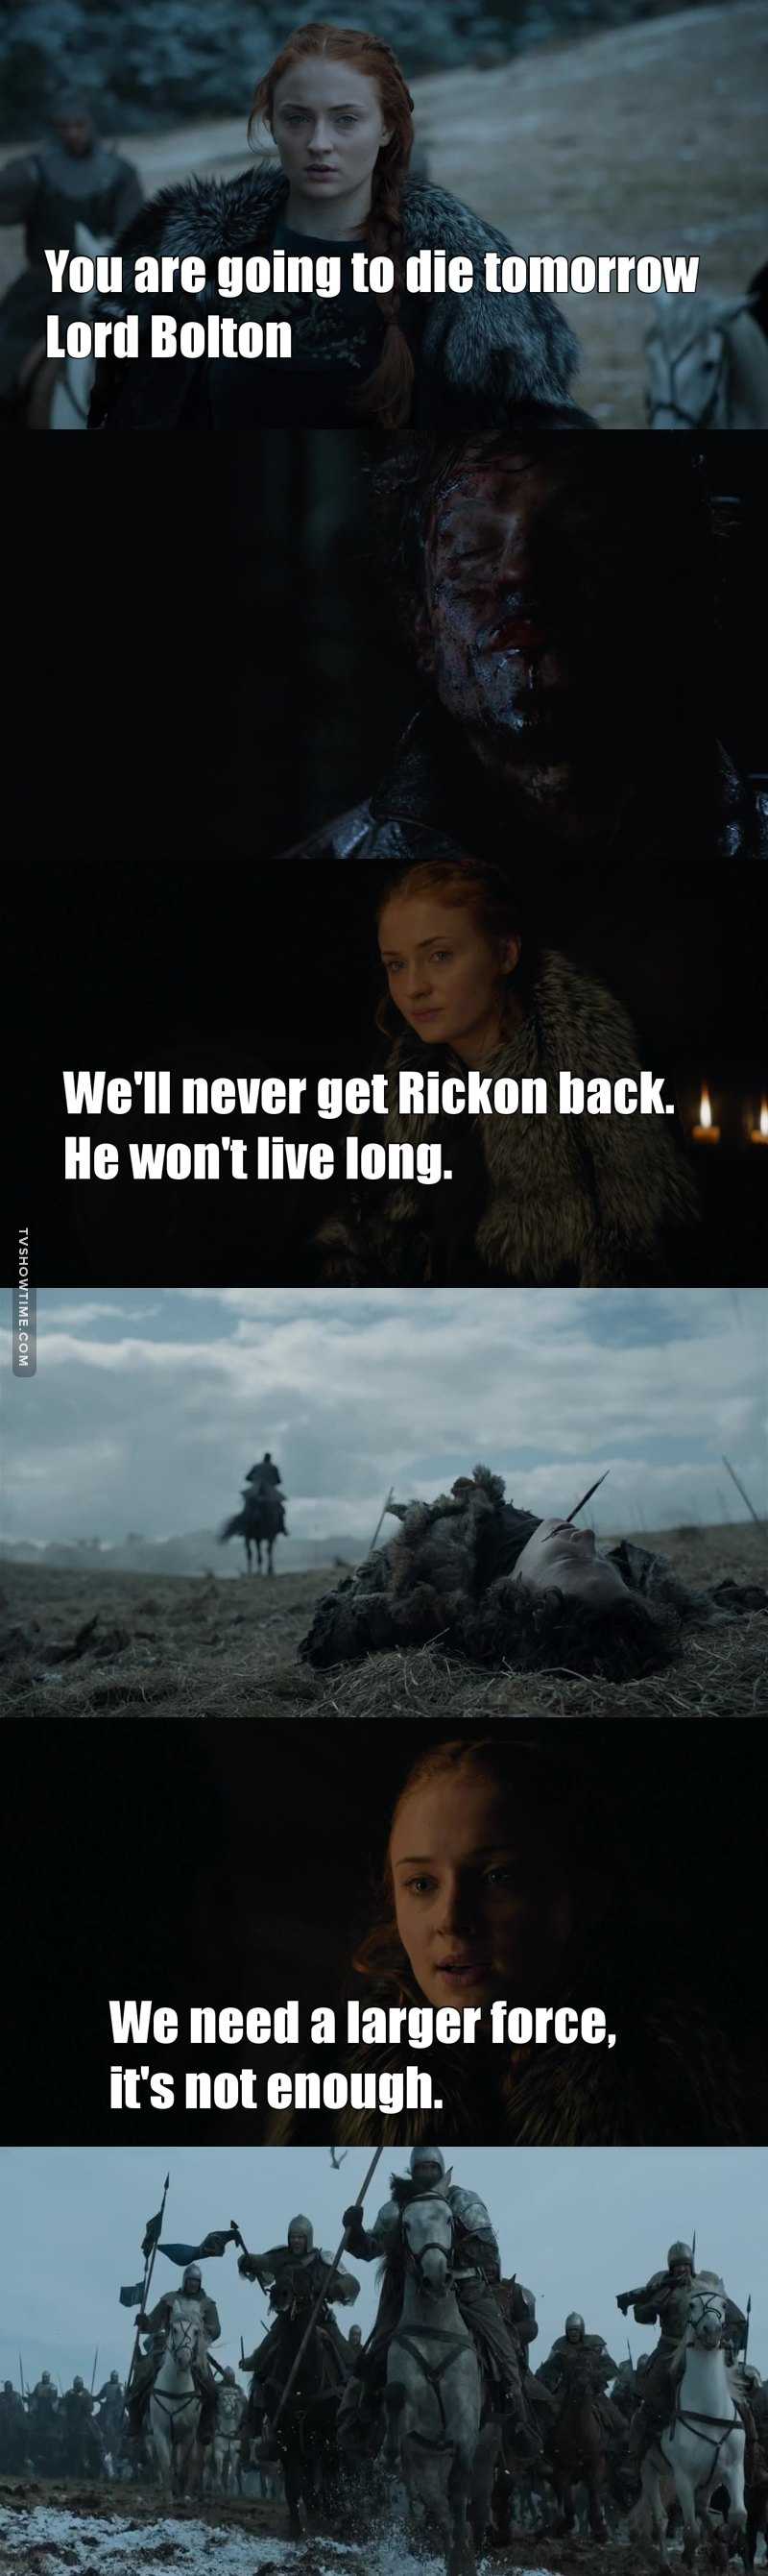 She truly understands the game now. Every single thing that she said turned out to be true. #TeamSansa